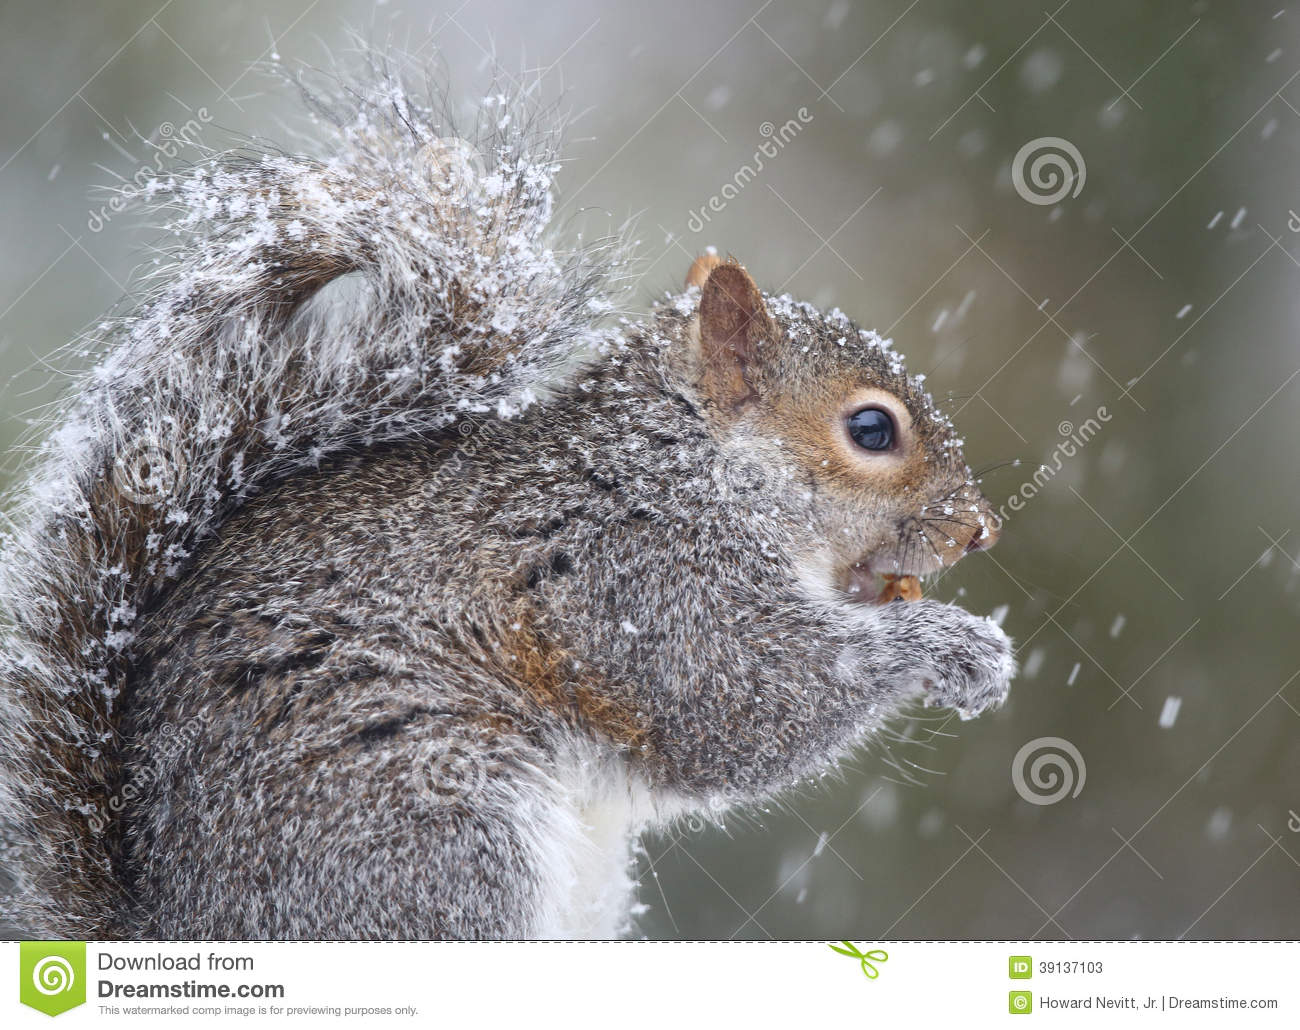 Squirrel eating in snow